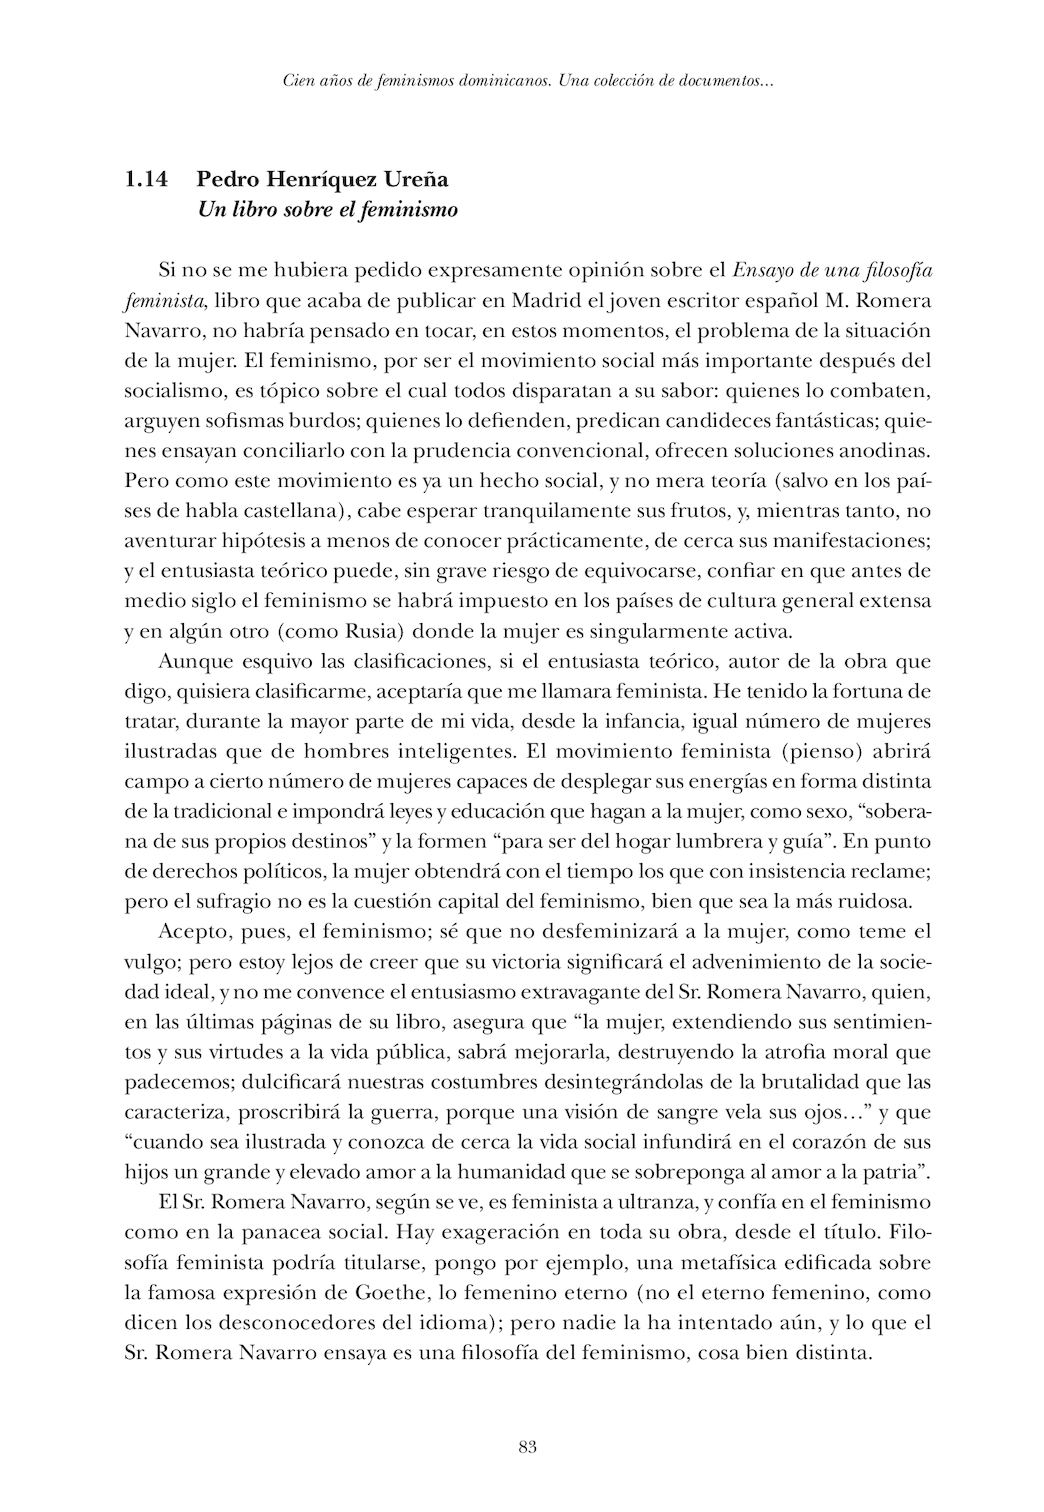 Page 83